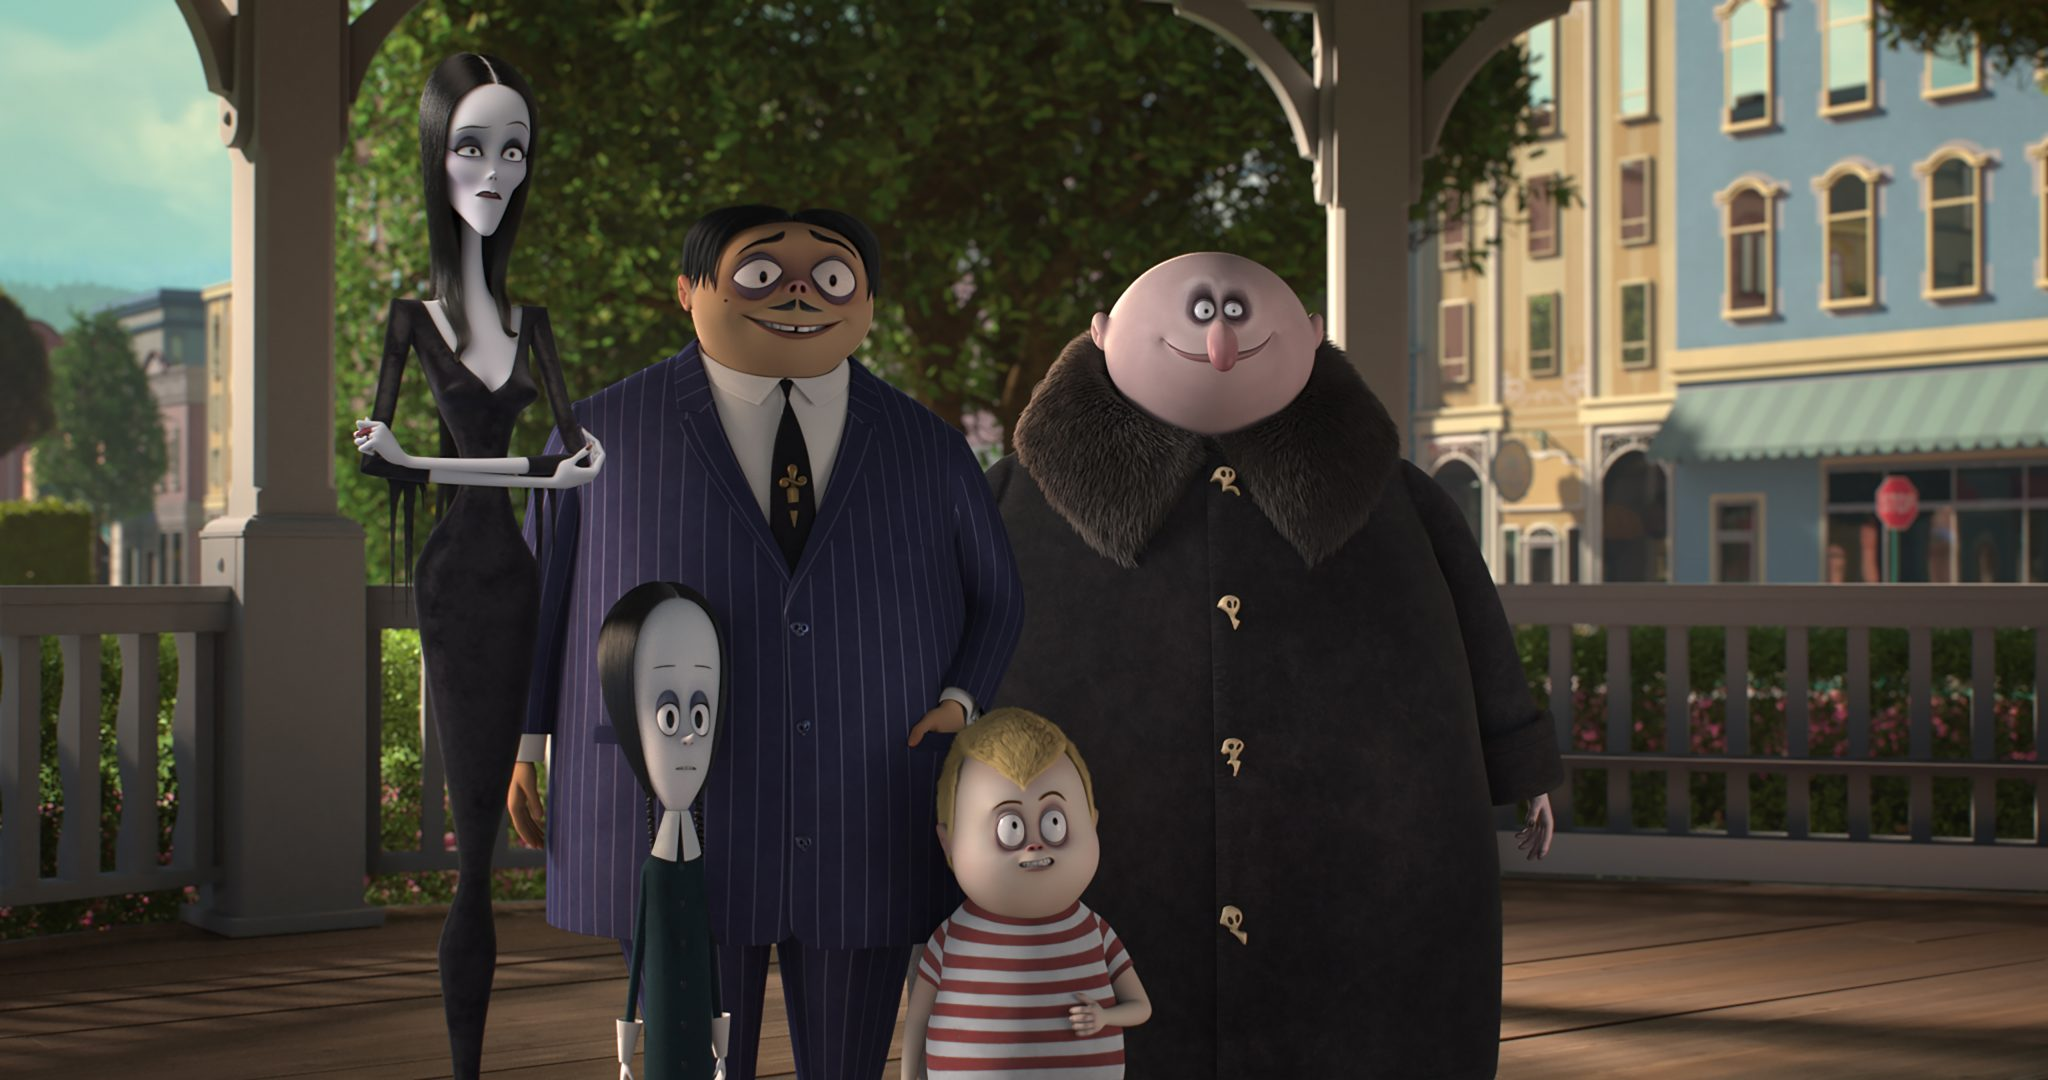 La famille Addams - Credit: Metro Goldwyn Mayer Pictures © 2019 Metro-Goldwyn-Mayer Pictures Inc. All Rights Reserved.